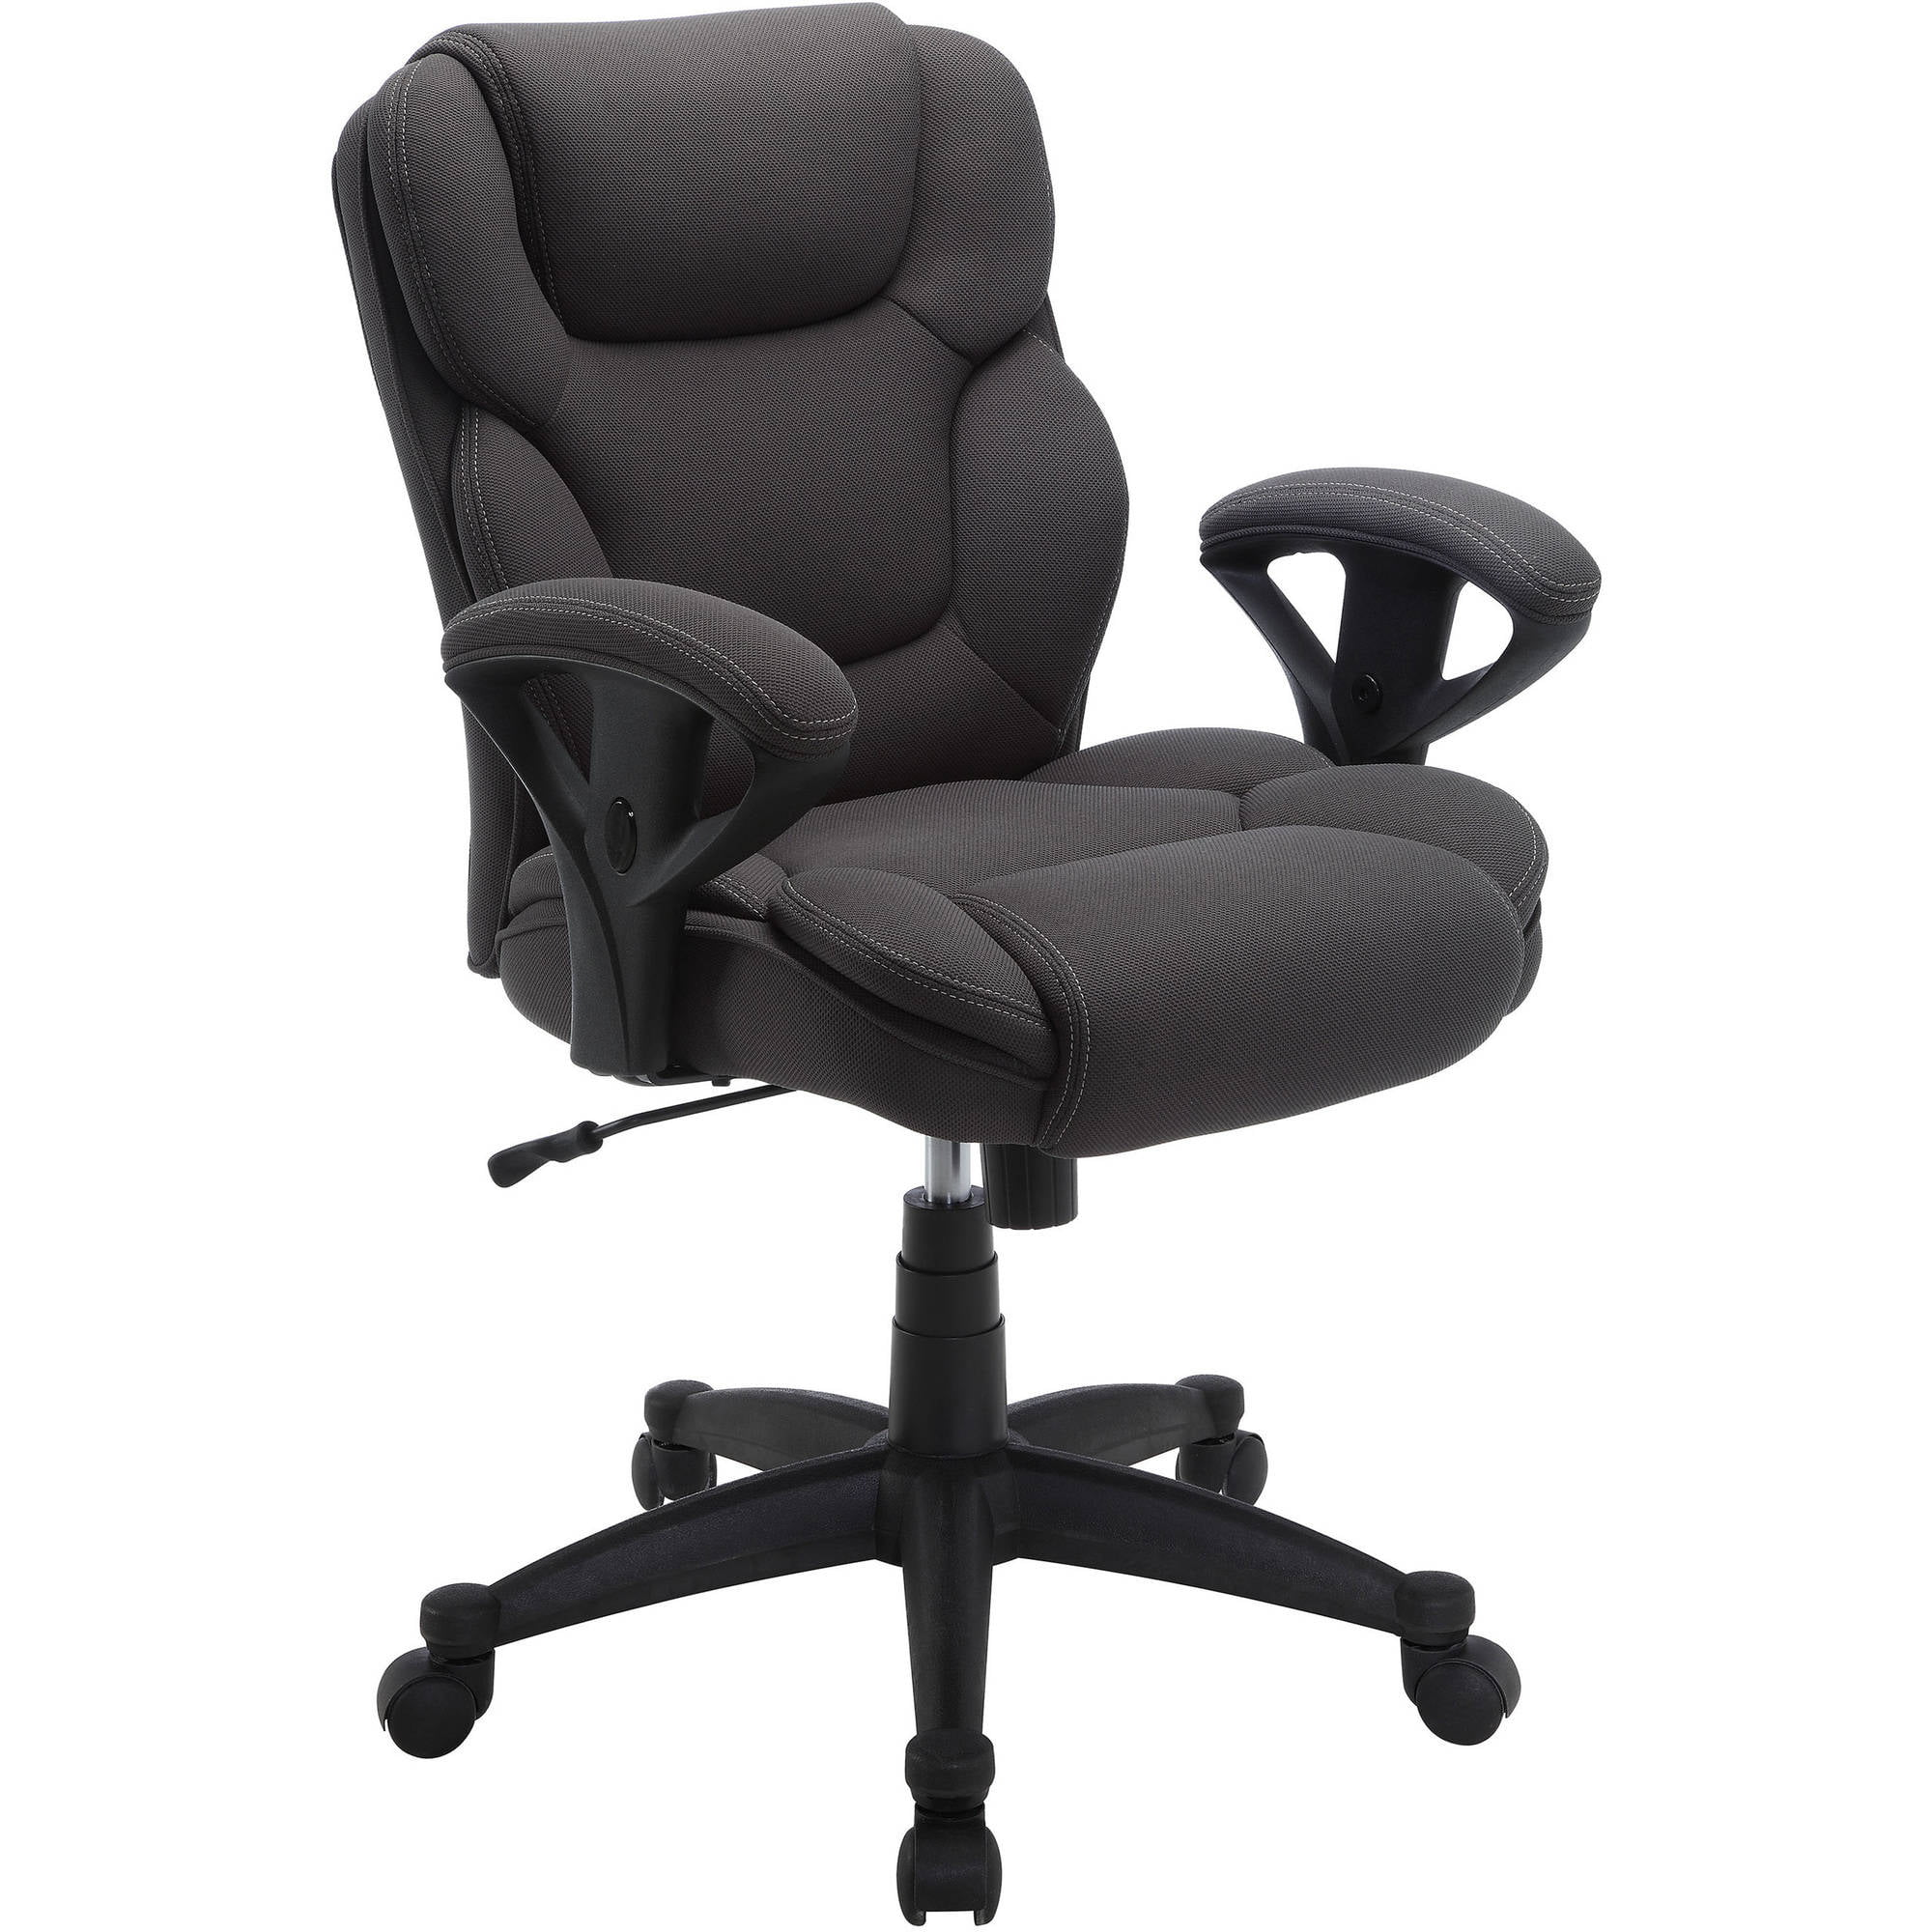 Serta Gray Mesh Fabric Big and Tall Manager Chair puter fice